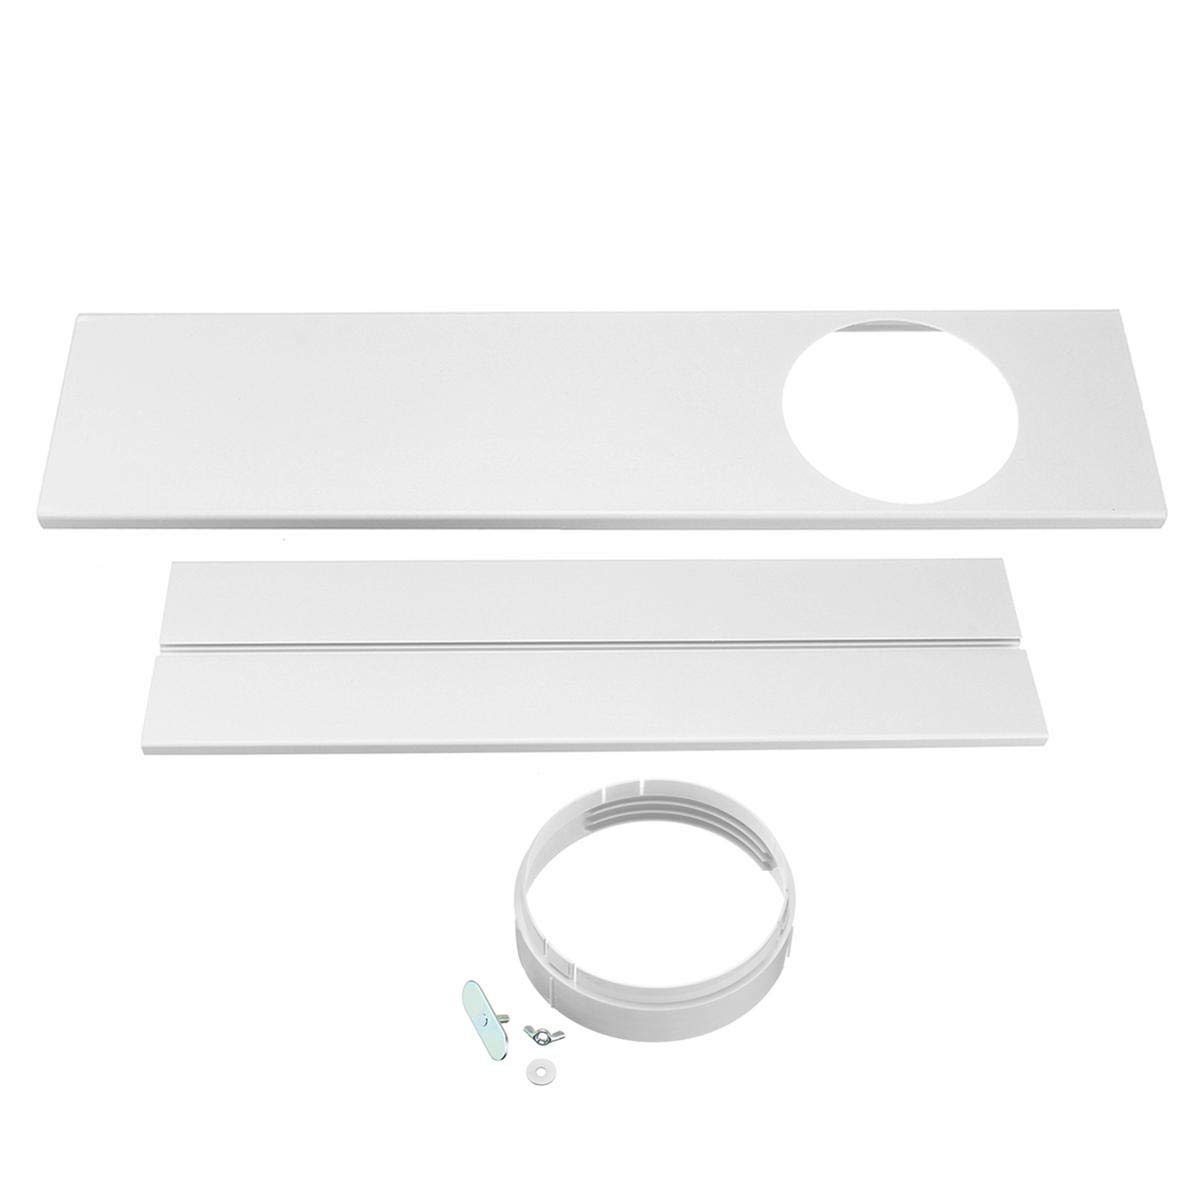 2Pcs 120CM Window Slide Kit Plate for Portable Air Conditioner ...